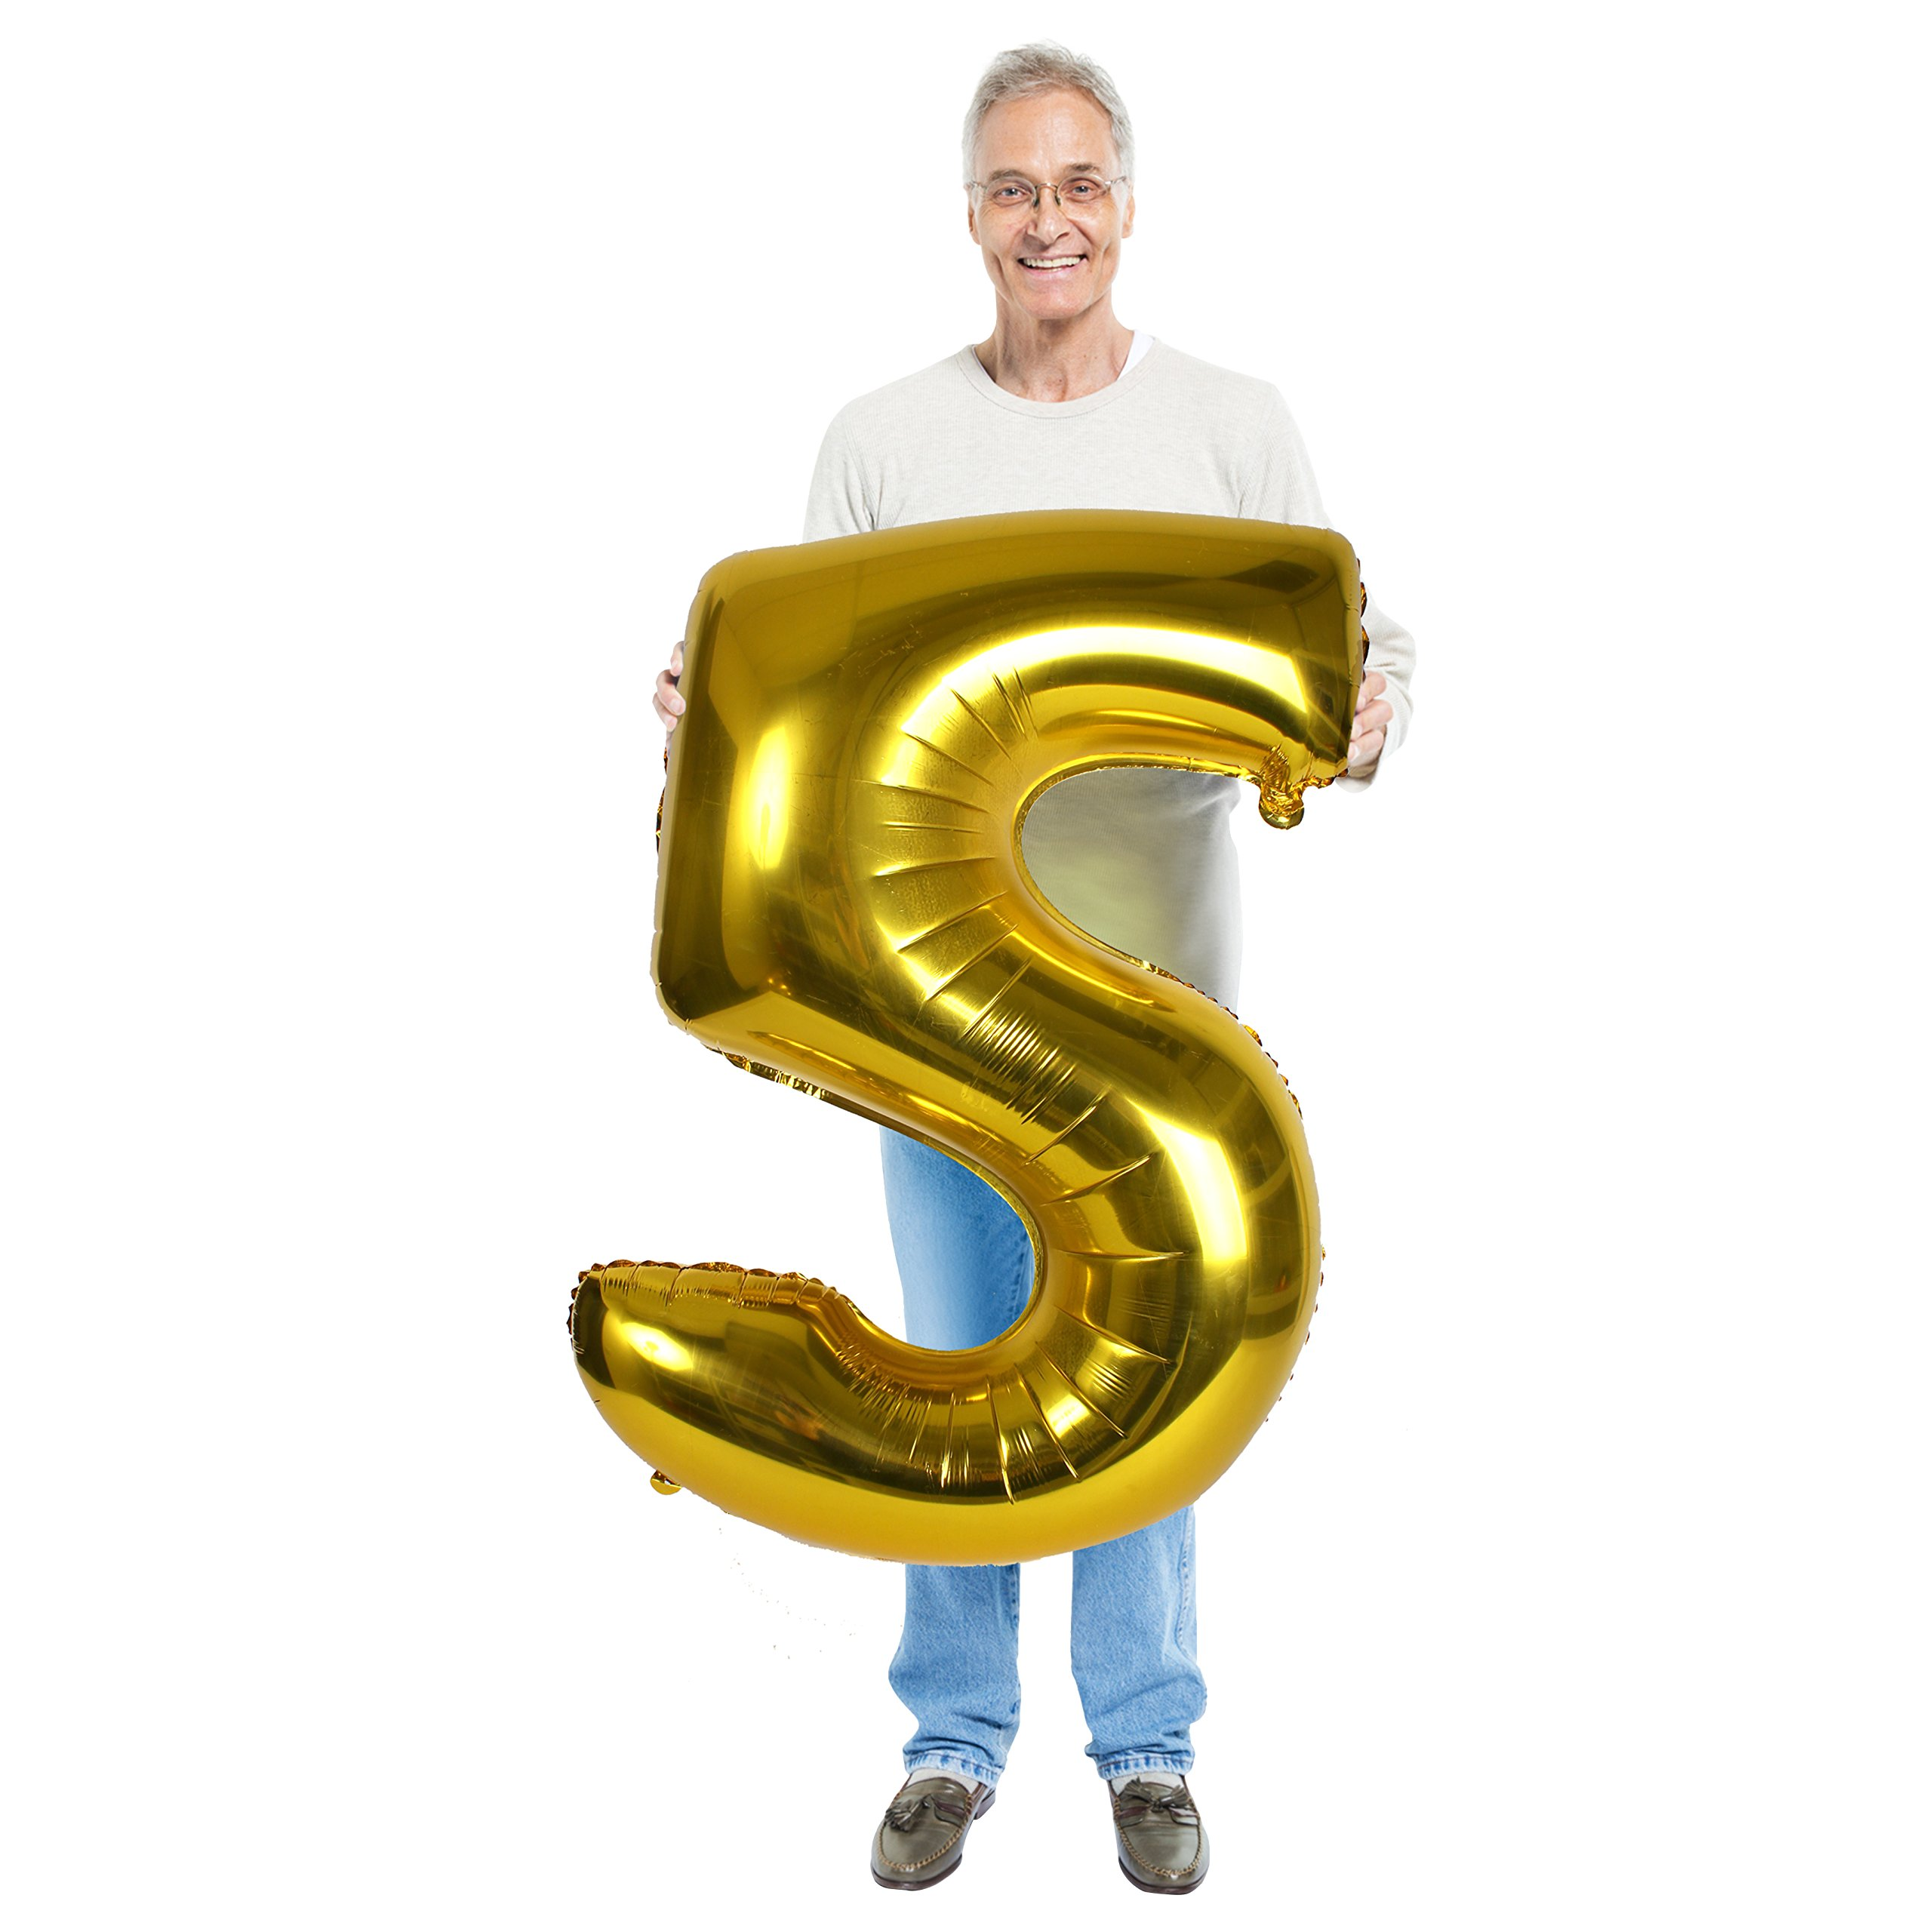 Treasures Gifted 40 Inch Gold Number 5 Balloon Large Foil Mylar Balloon for Birthday Party Wedding Anniversary Graduation Decorations Jumbo Foil Photo Props Picture Booth Big Ornaments